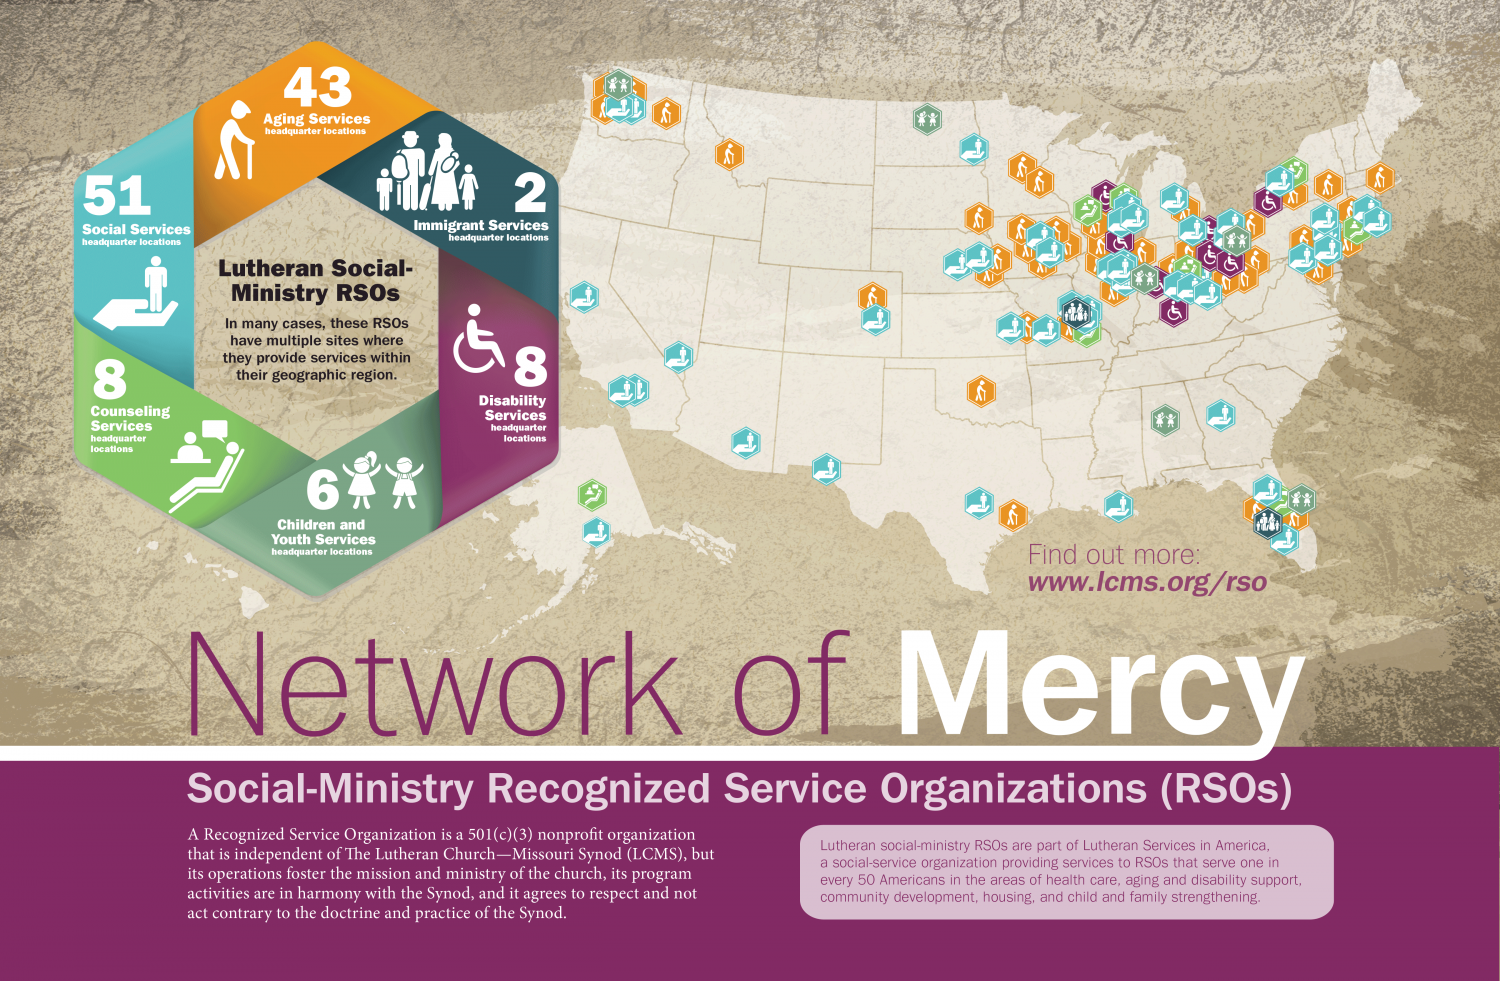 Network of Mercy Infographic